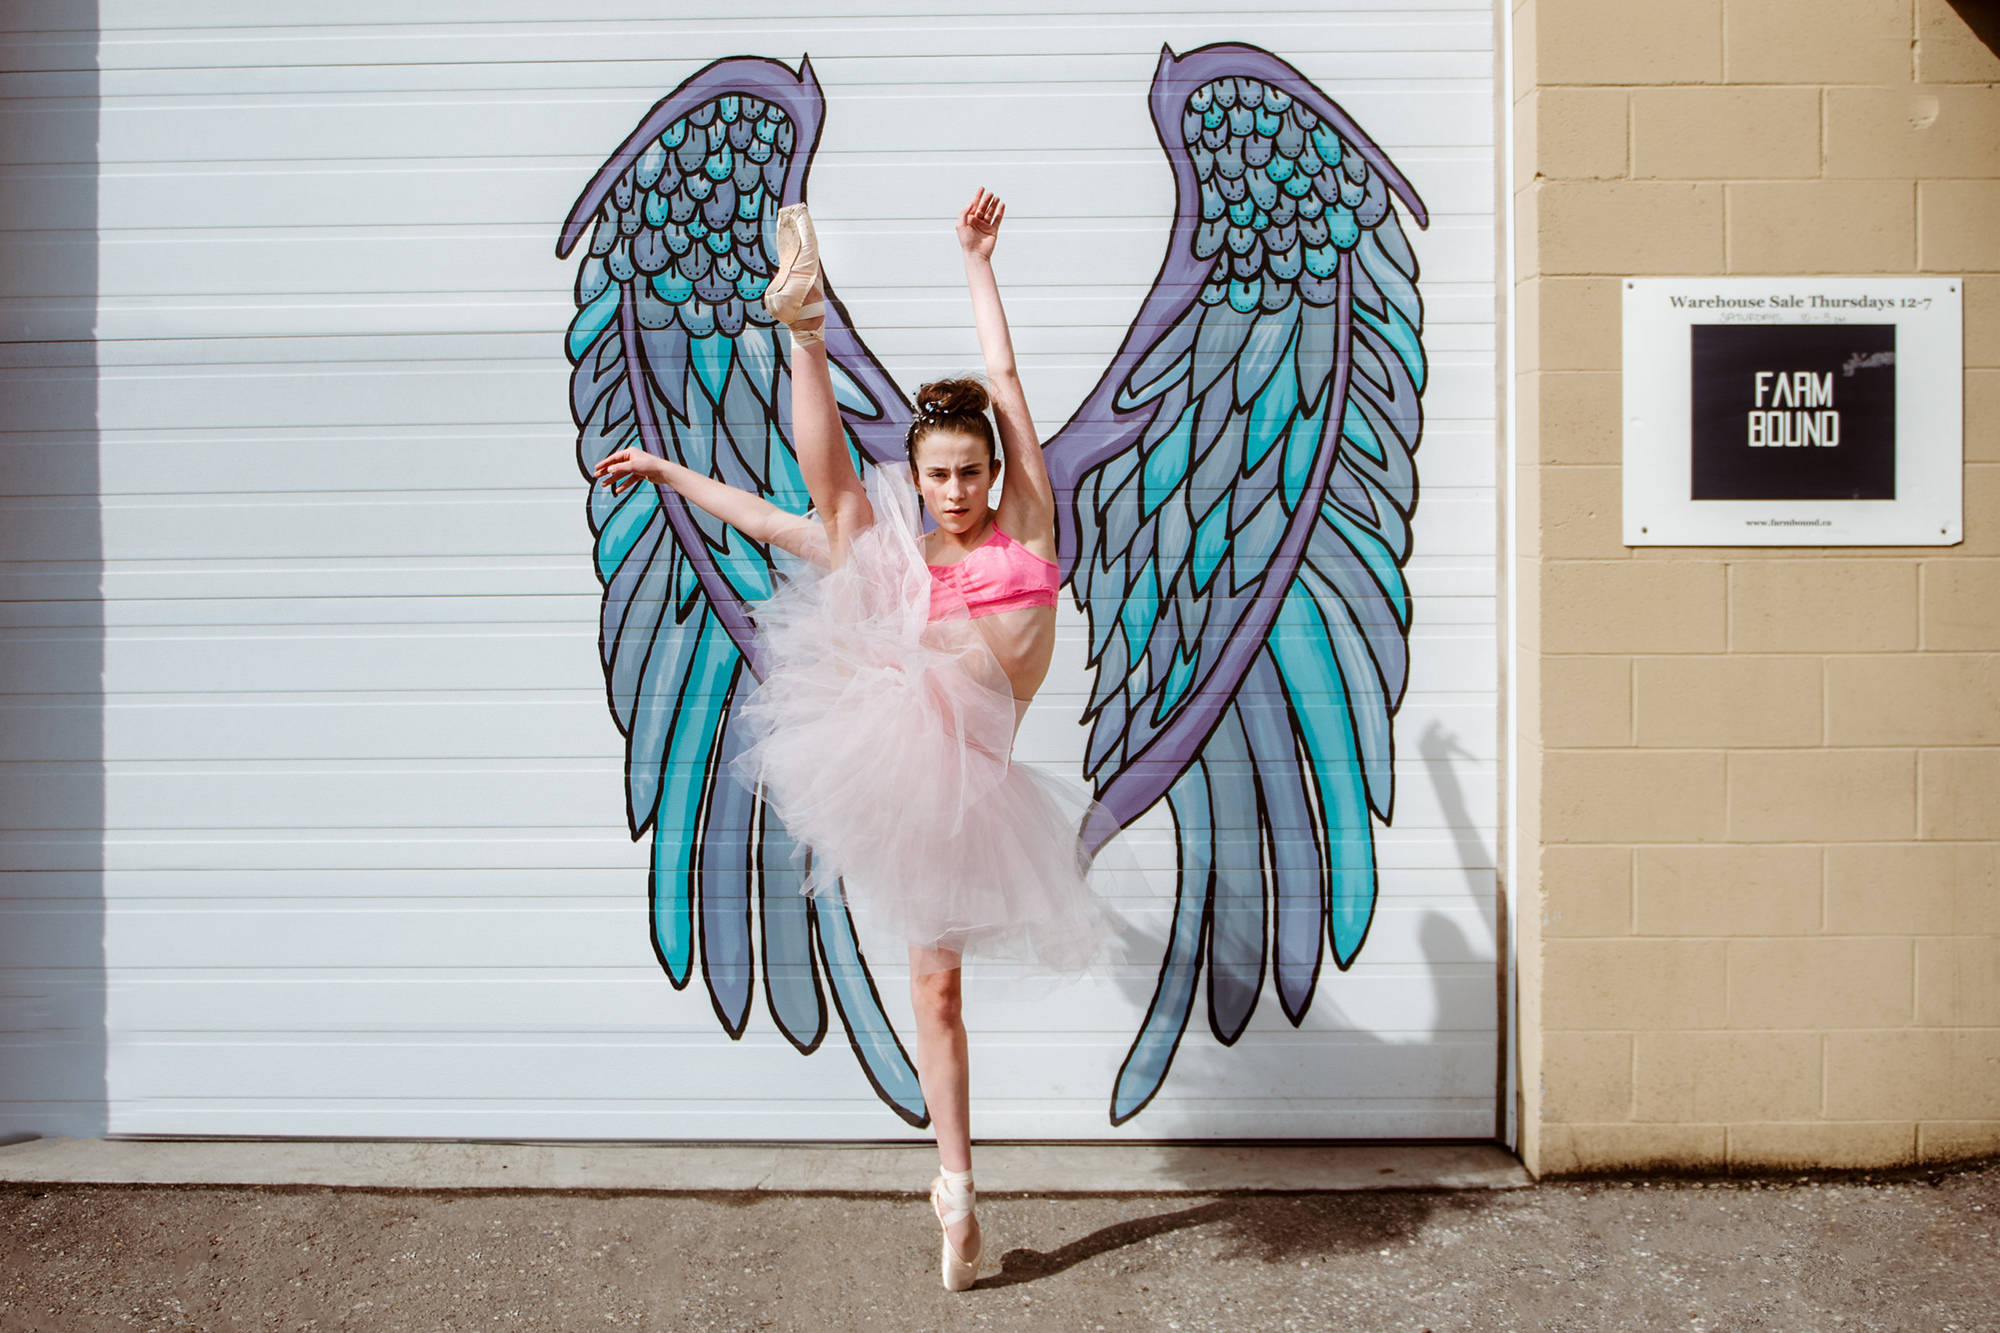 Tiernen O'Keefe has been dancing since she was three years old. (Carousel Studios)